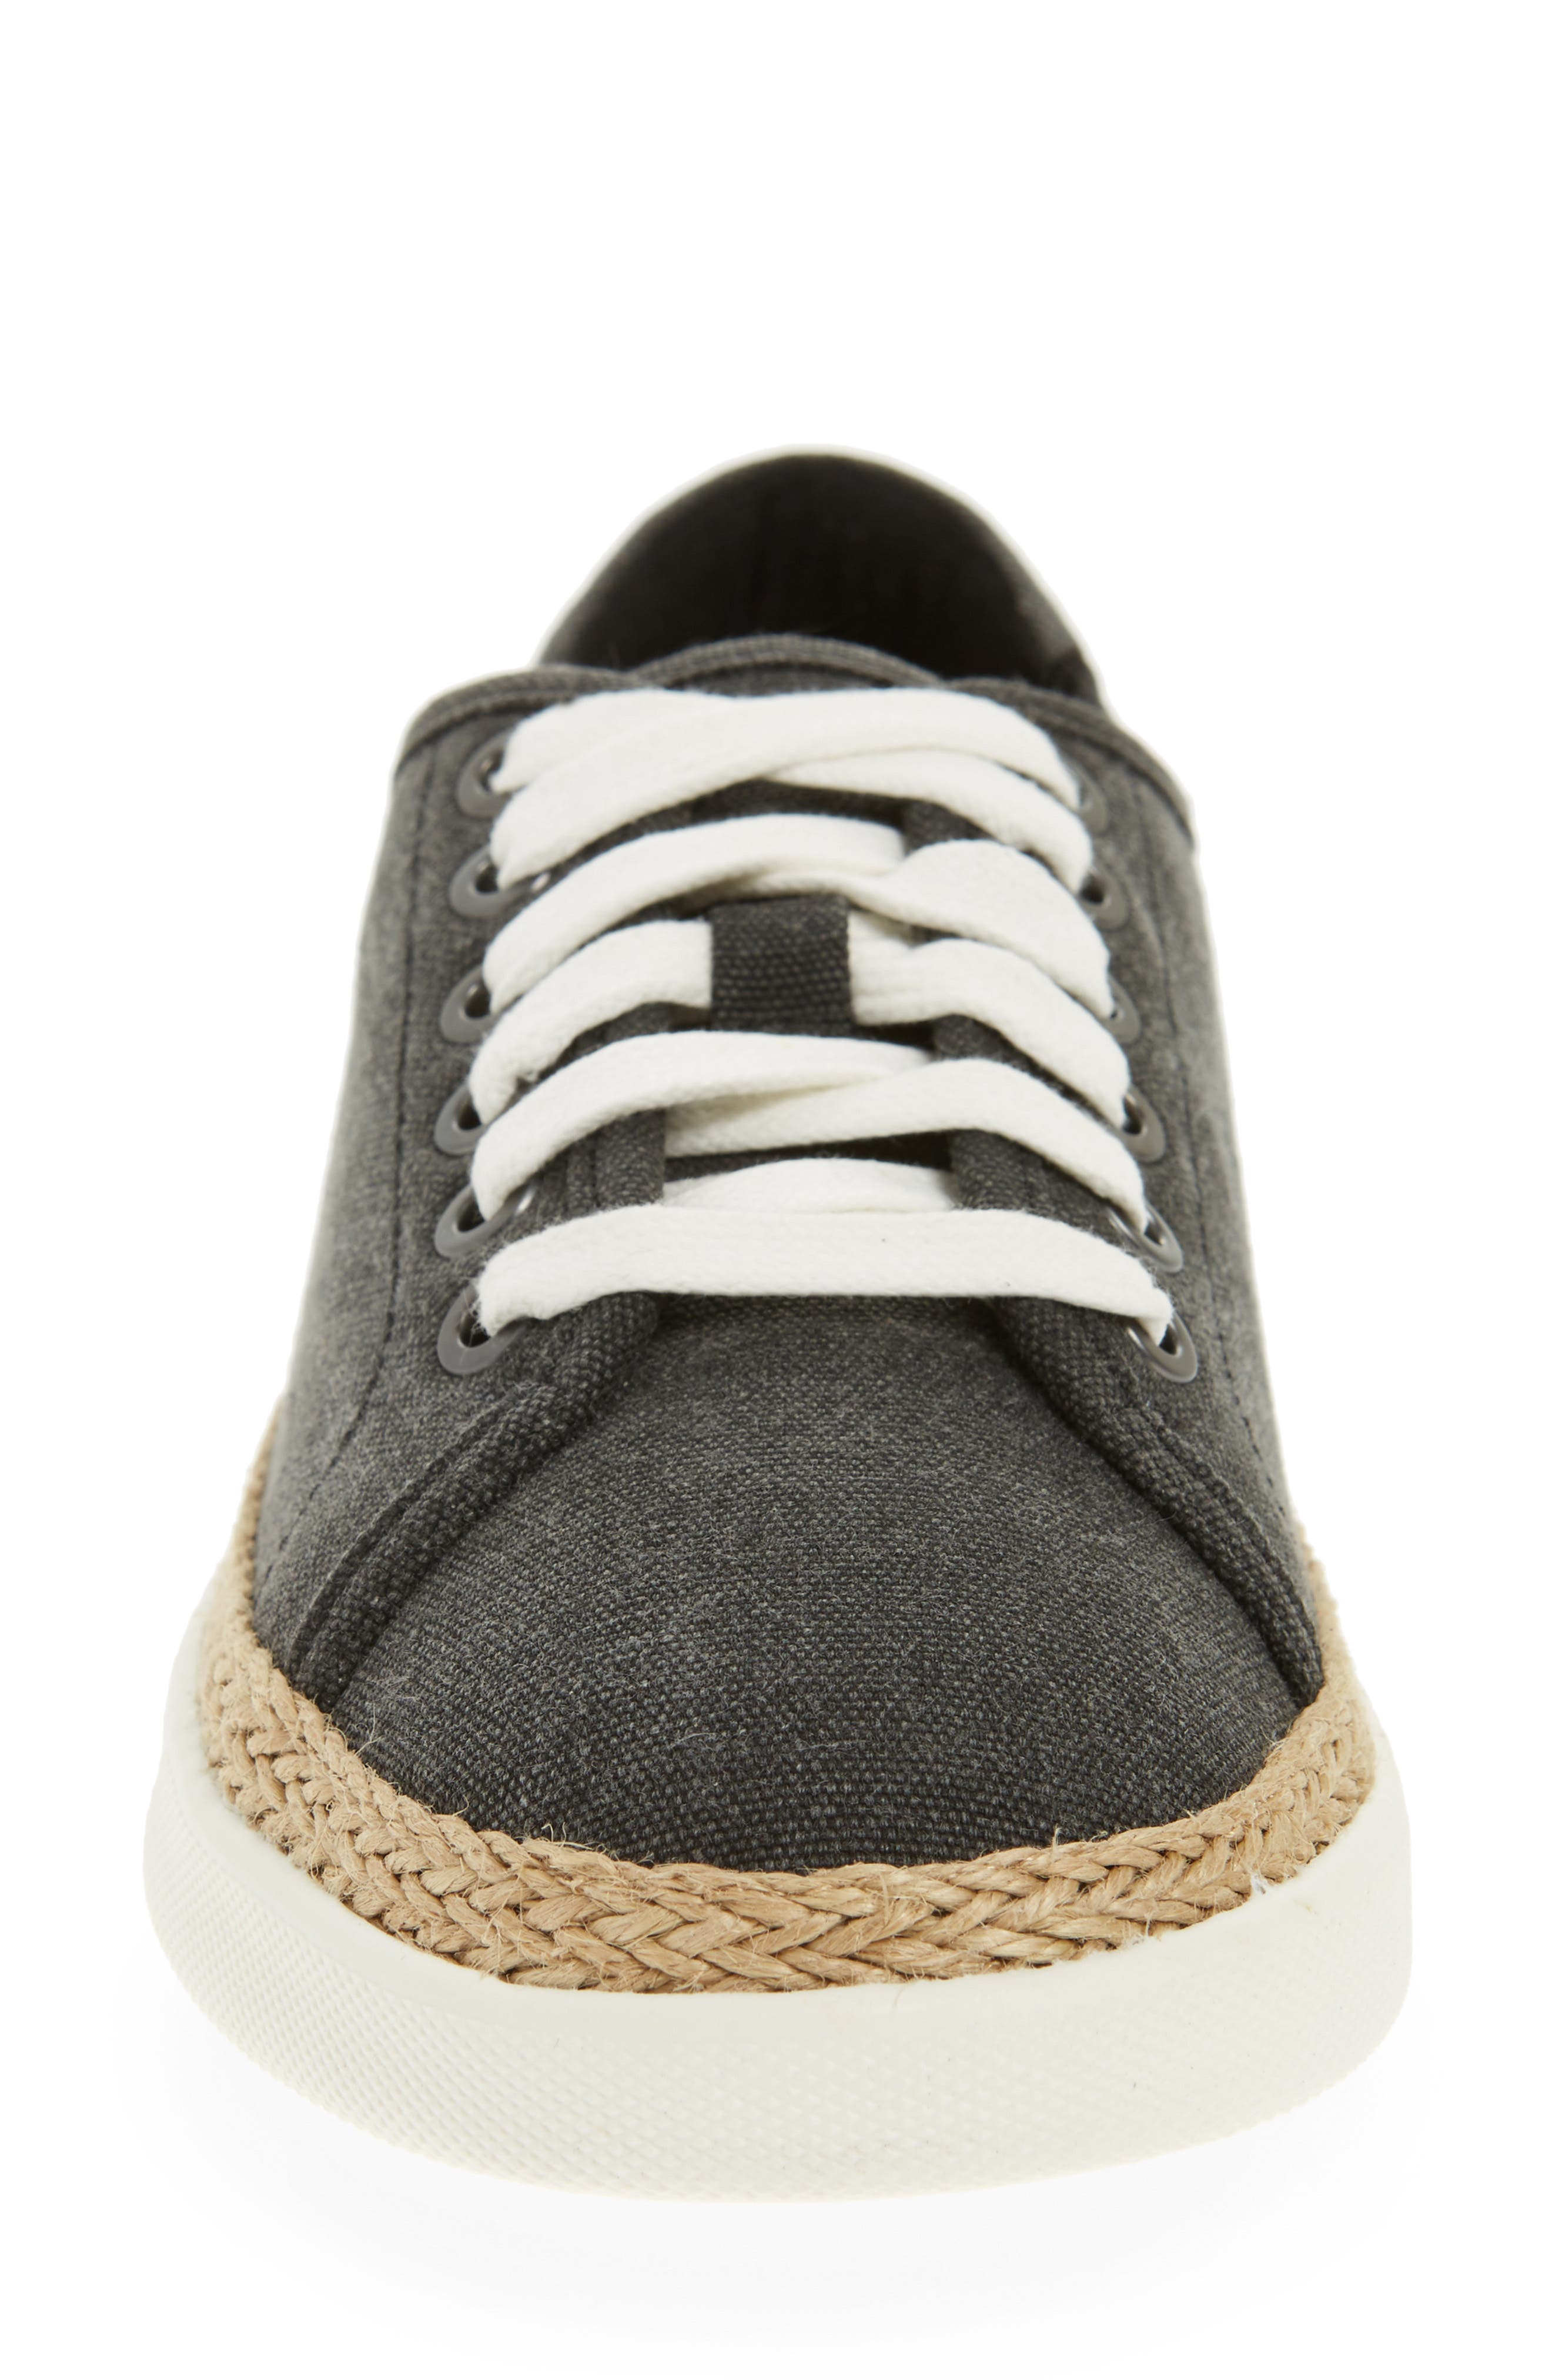 Hattie Sneaker,                             Alternate thumbnail 4, color,                             Black Canvas